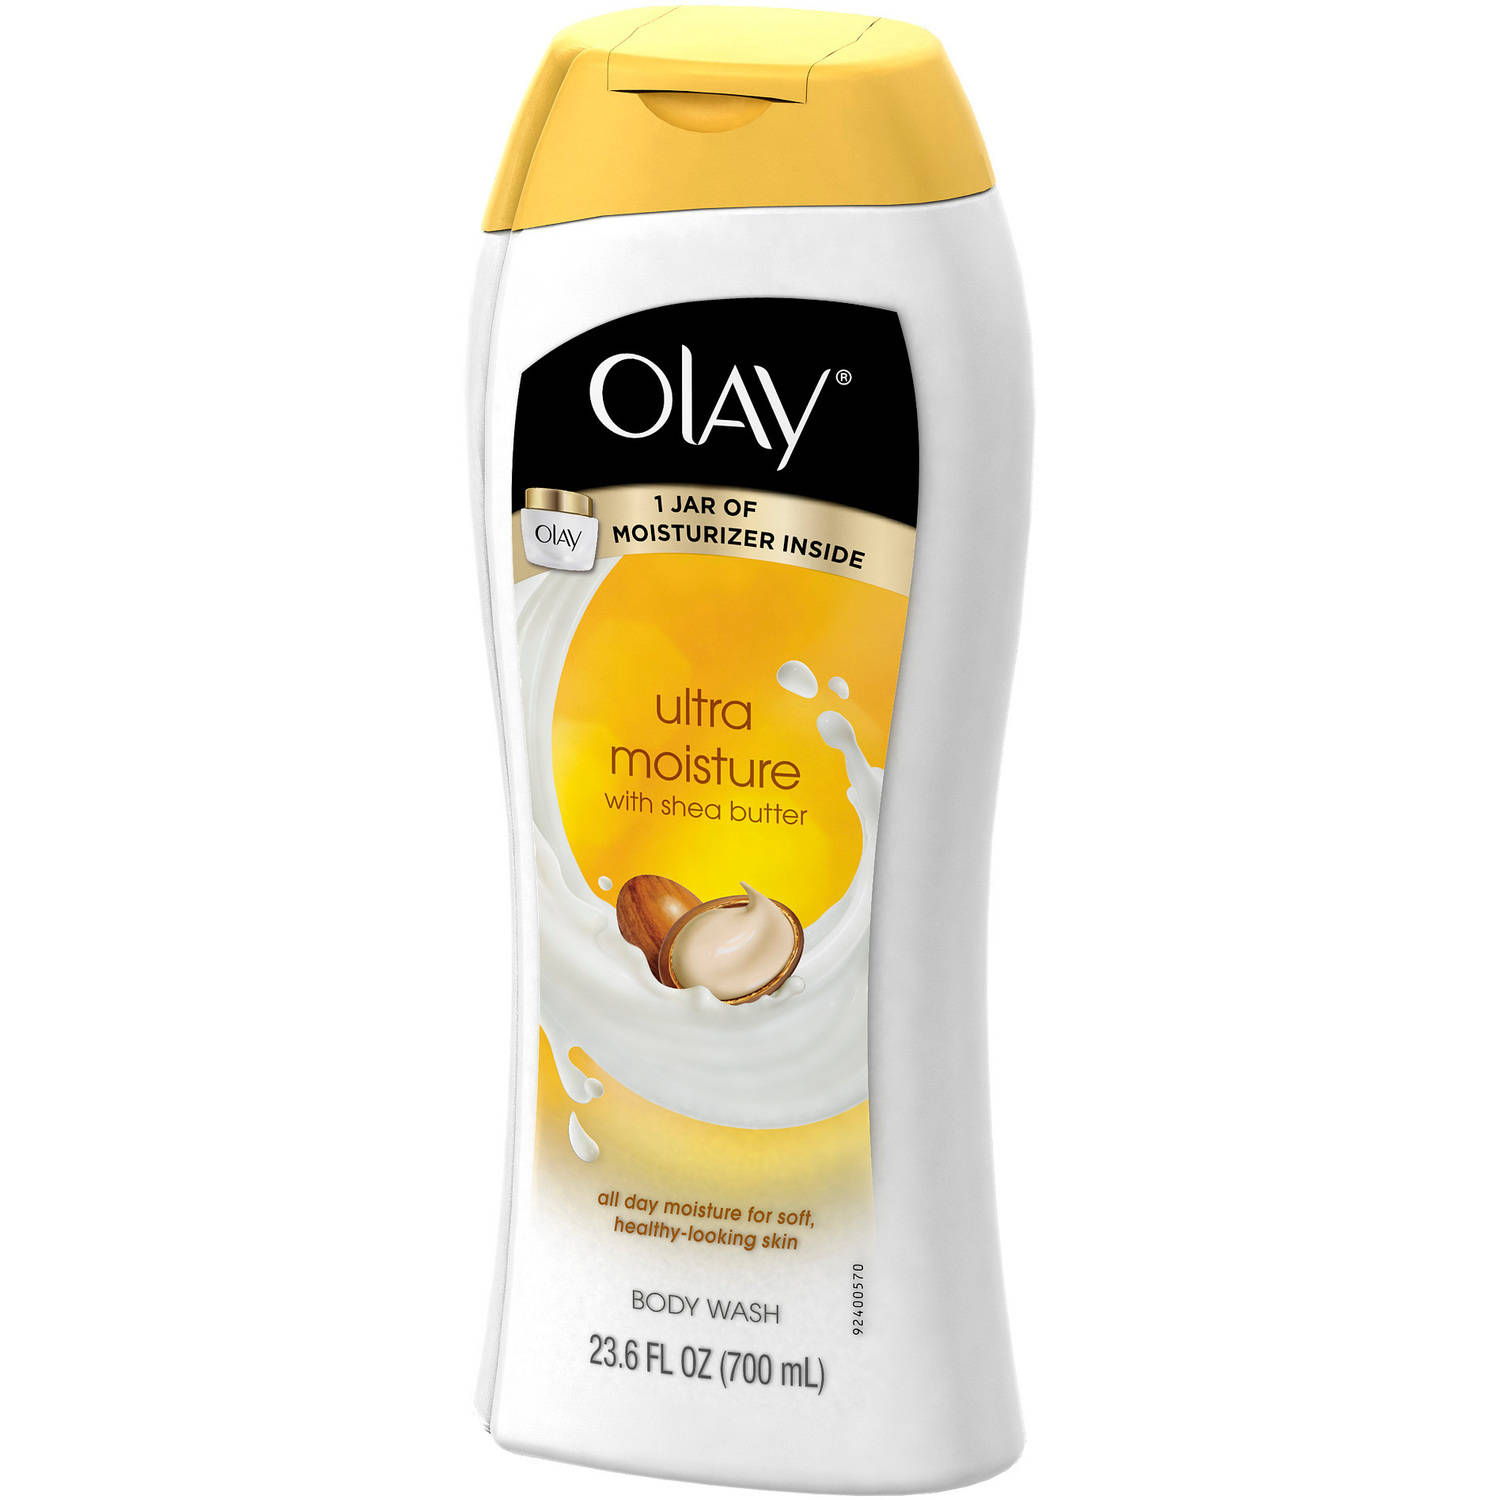 Olay Ultra Moisture Beauty Bars 16 count (4 oz each) Regular soap can leave your skin dry, but Olay Ultra Moisture Shea Butter Beauty Bar is different.